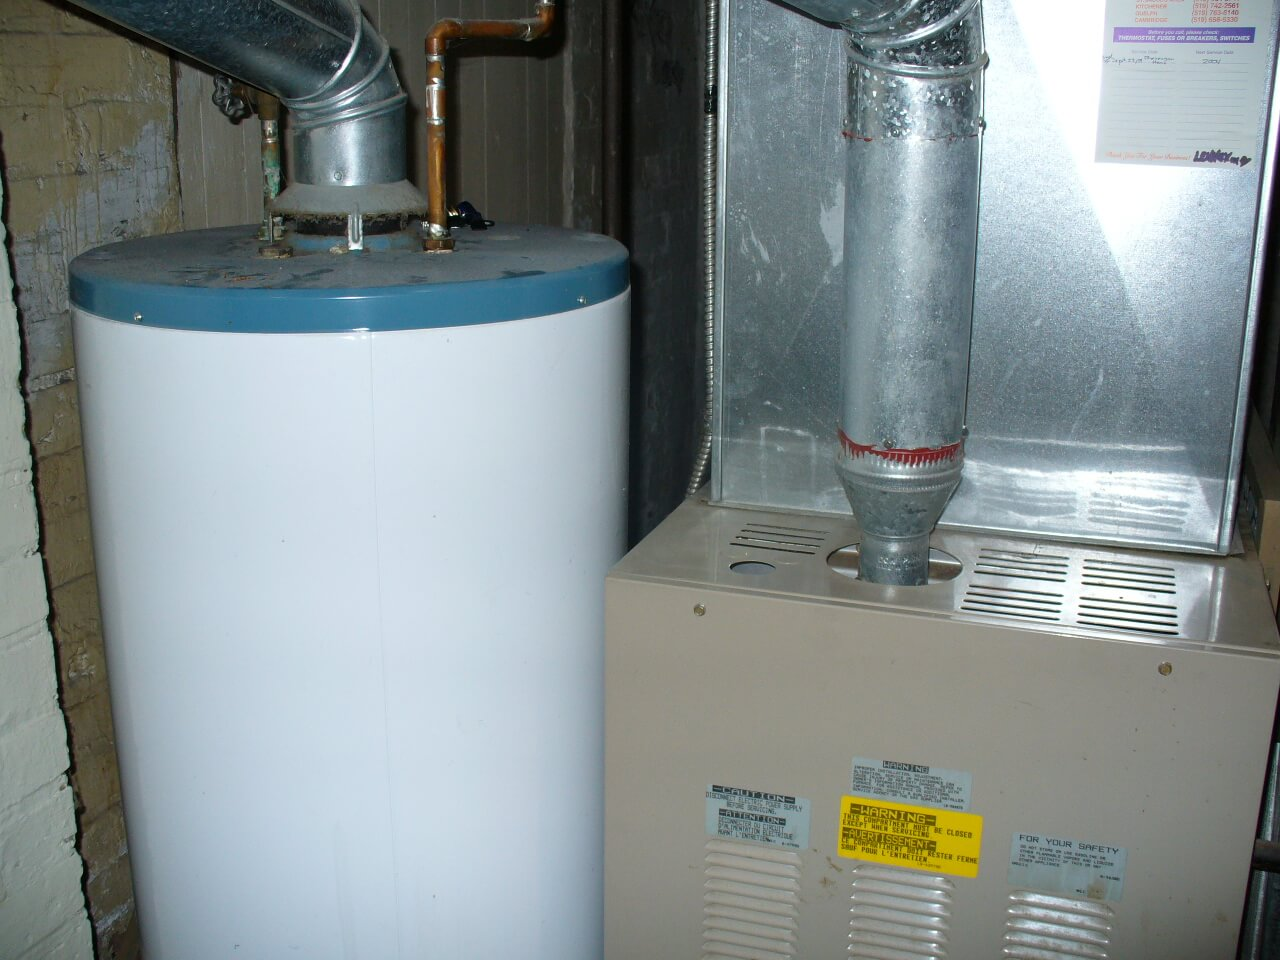 vented-water-heater-and-furnace